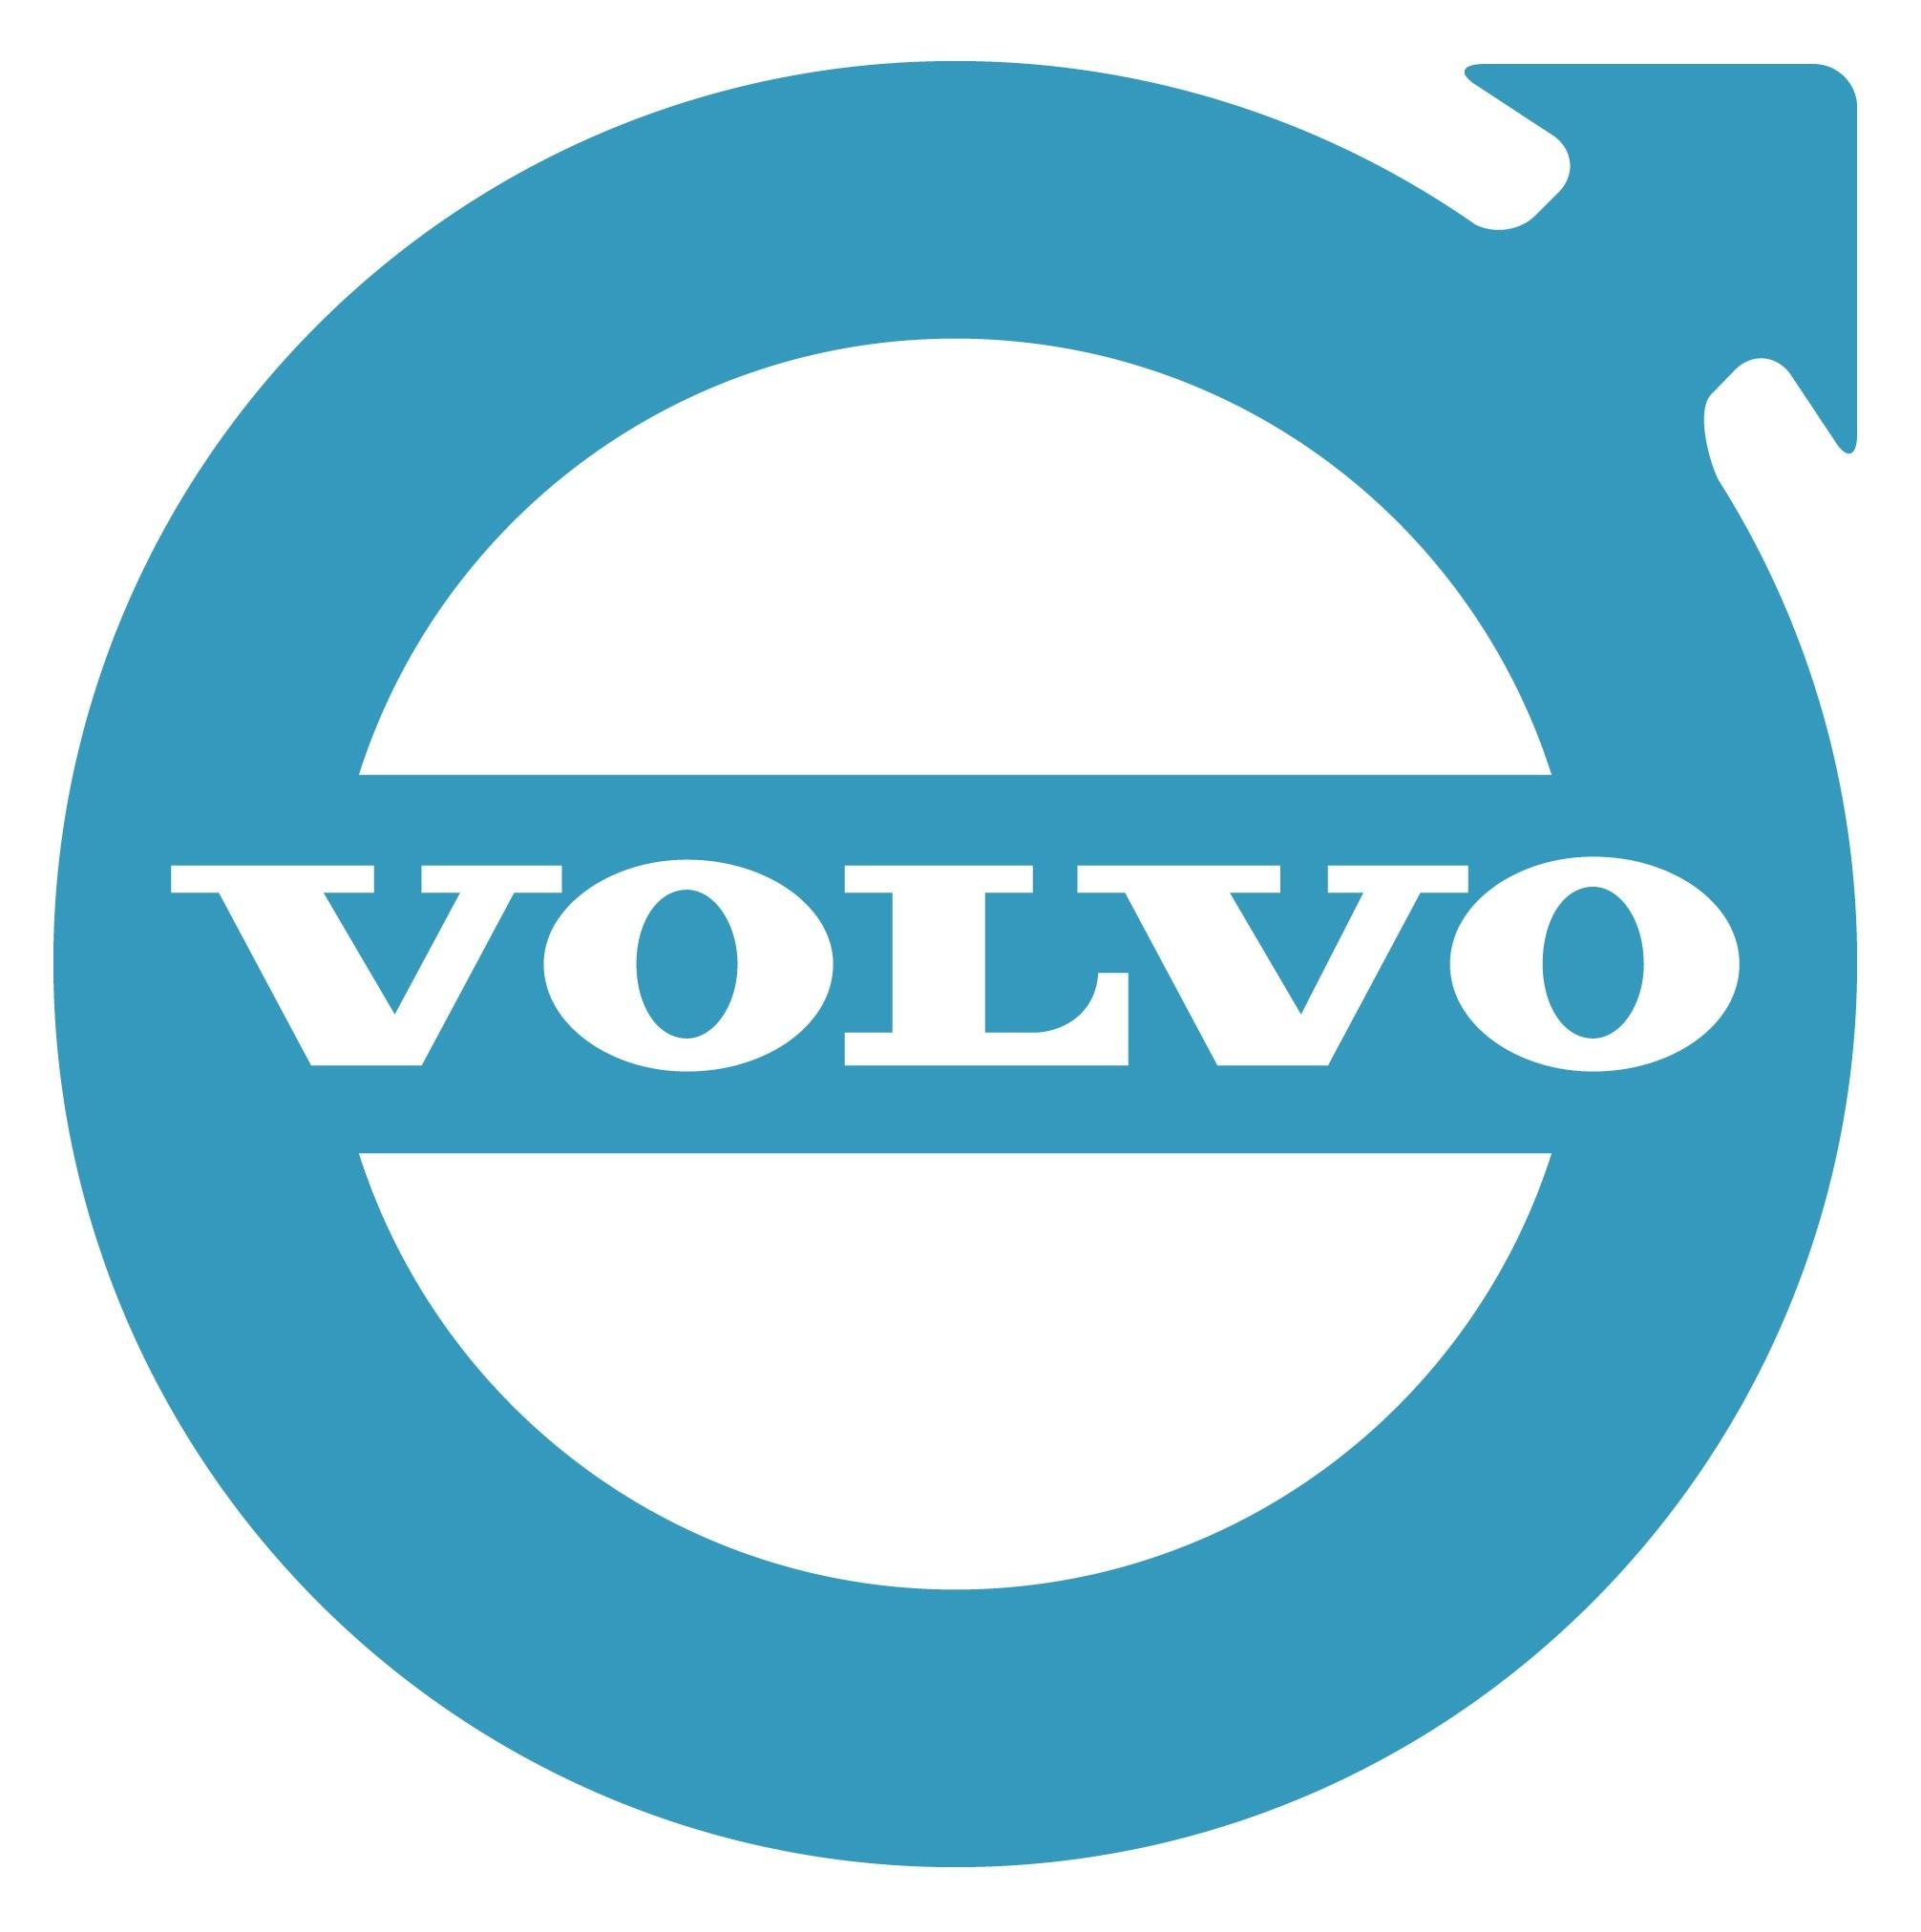 Volvo Logo Wallpapers – JPEG Box Download your favorite digital